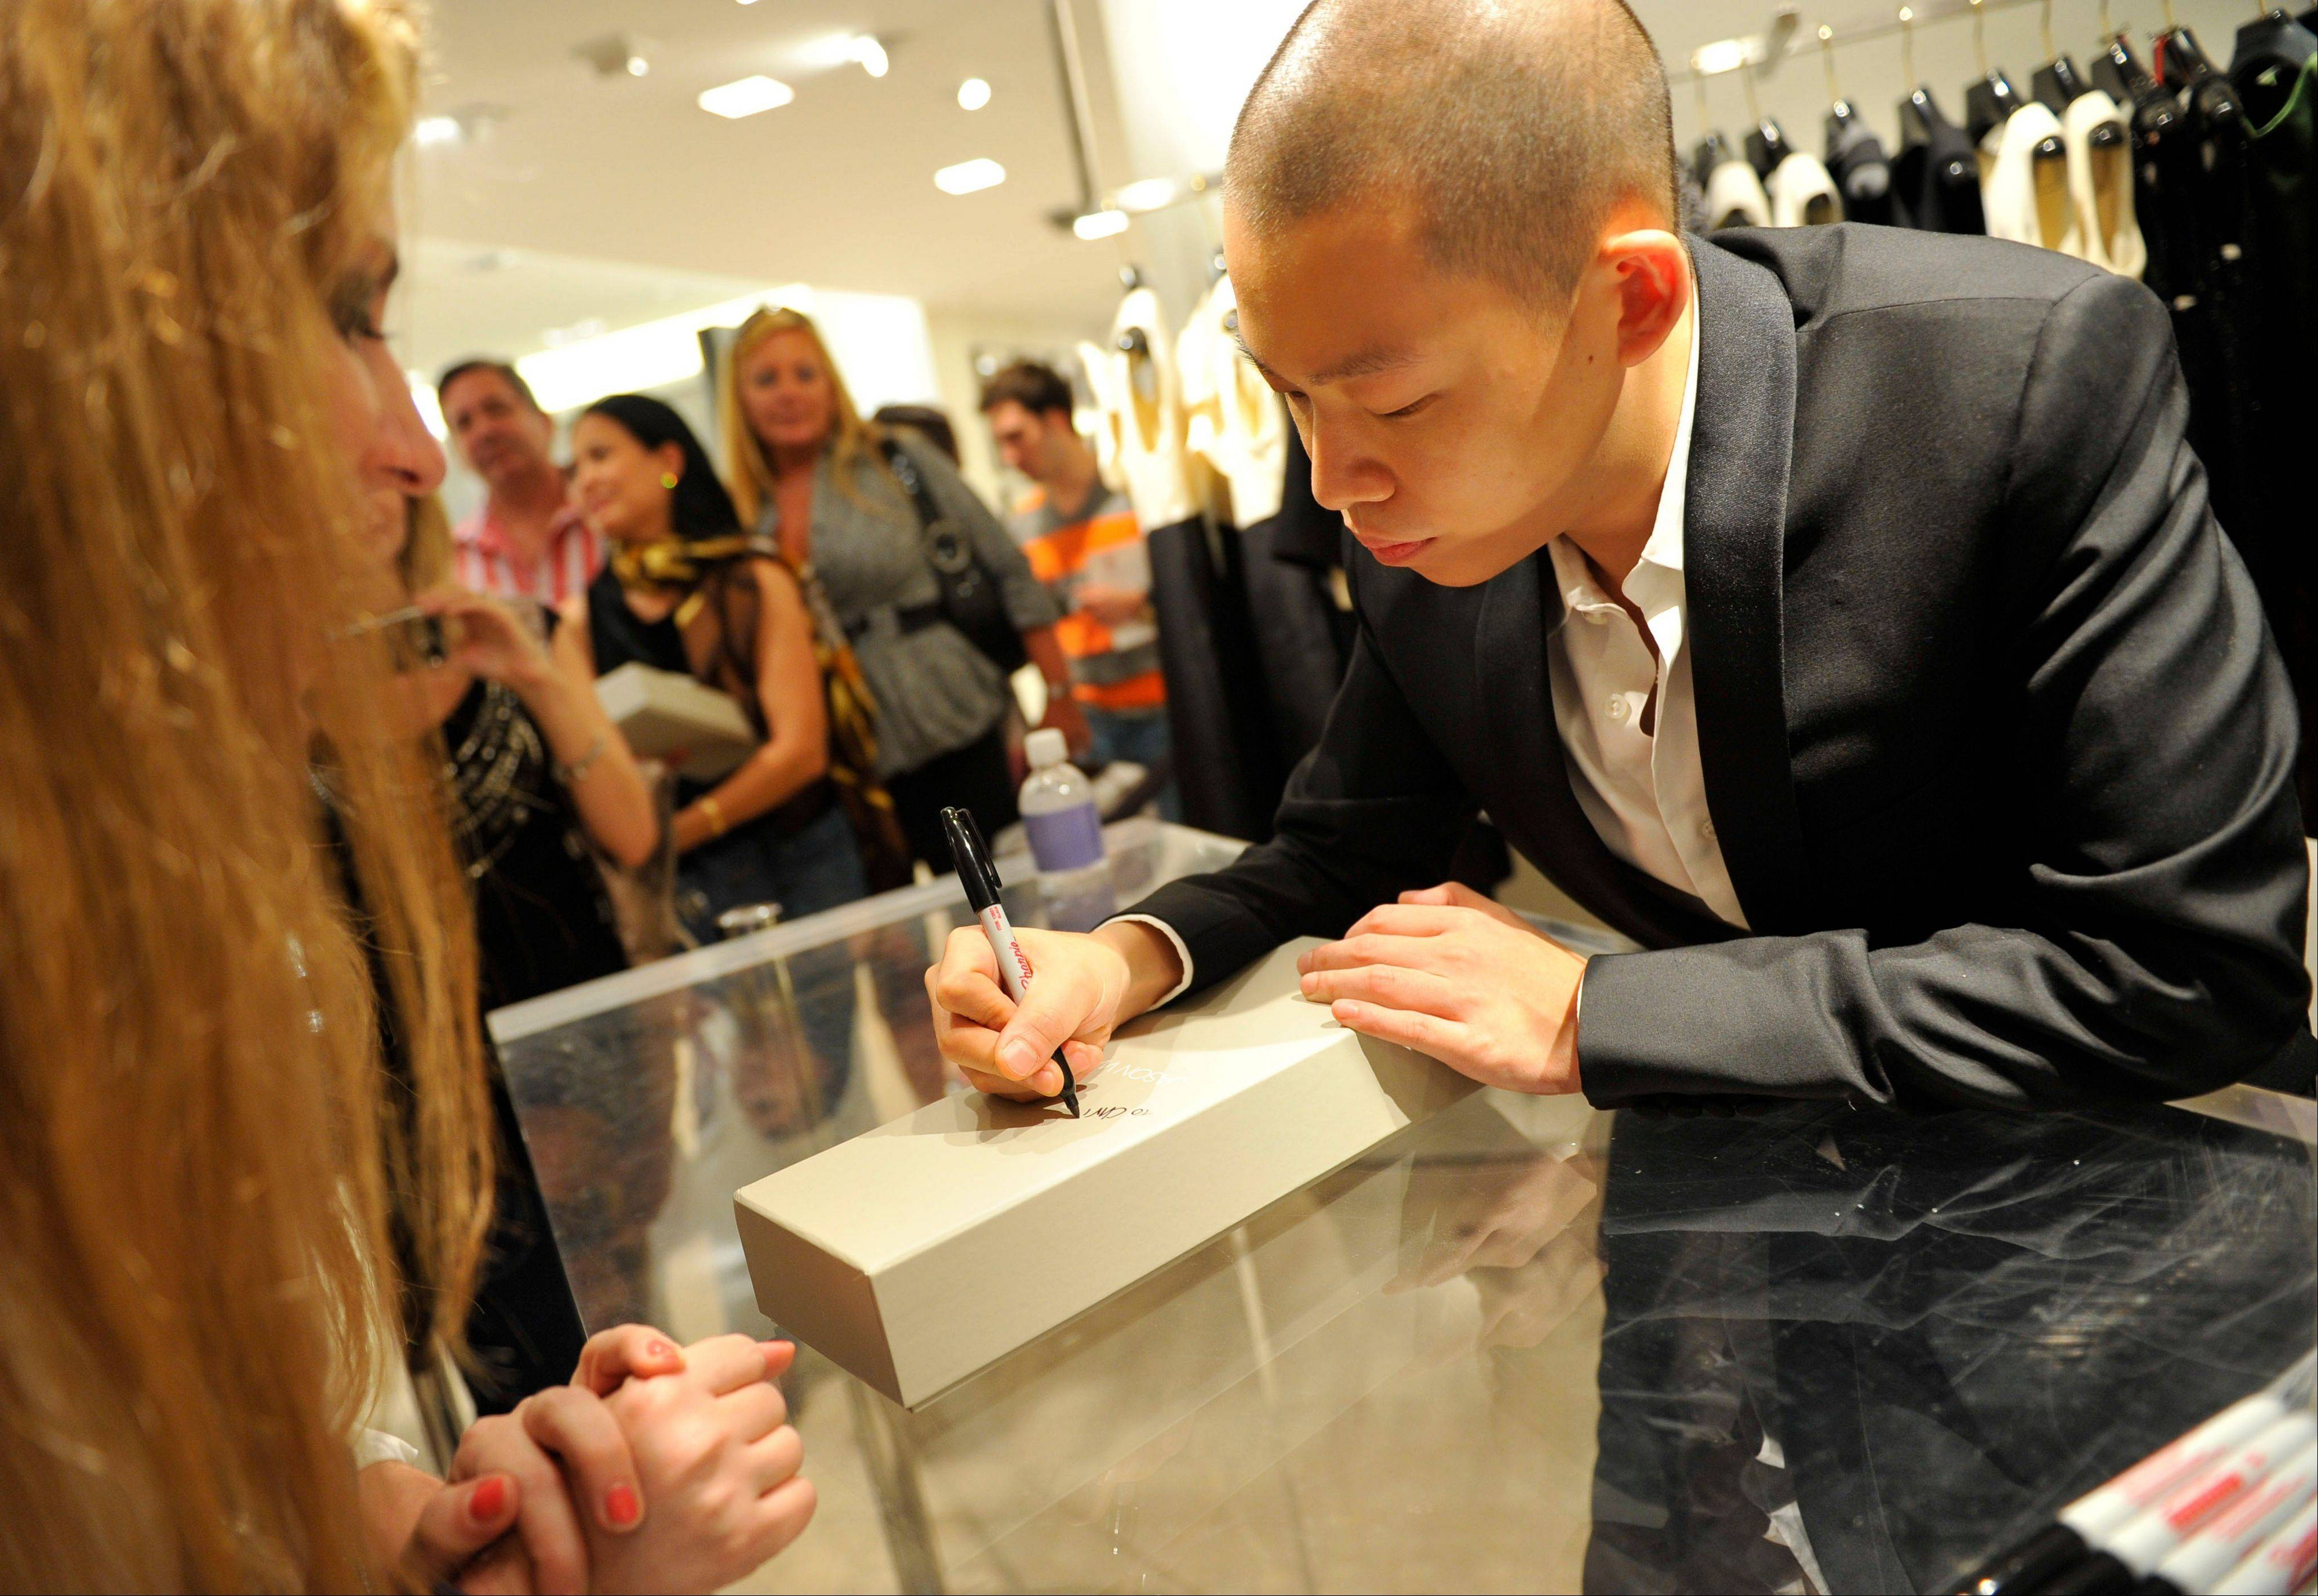 Designer Jason Wu autographs a box at Bergdorf Goodman during Fashion's Night Out during Fashion Week in New York last year.